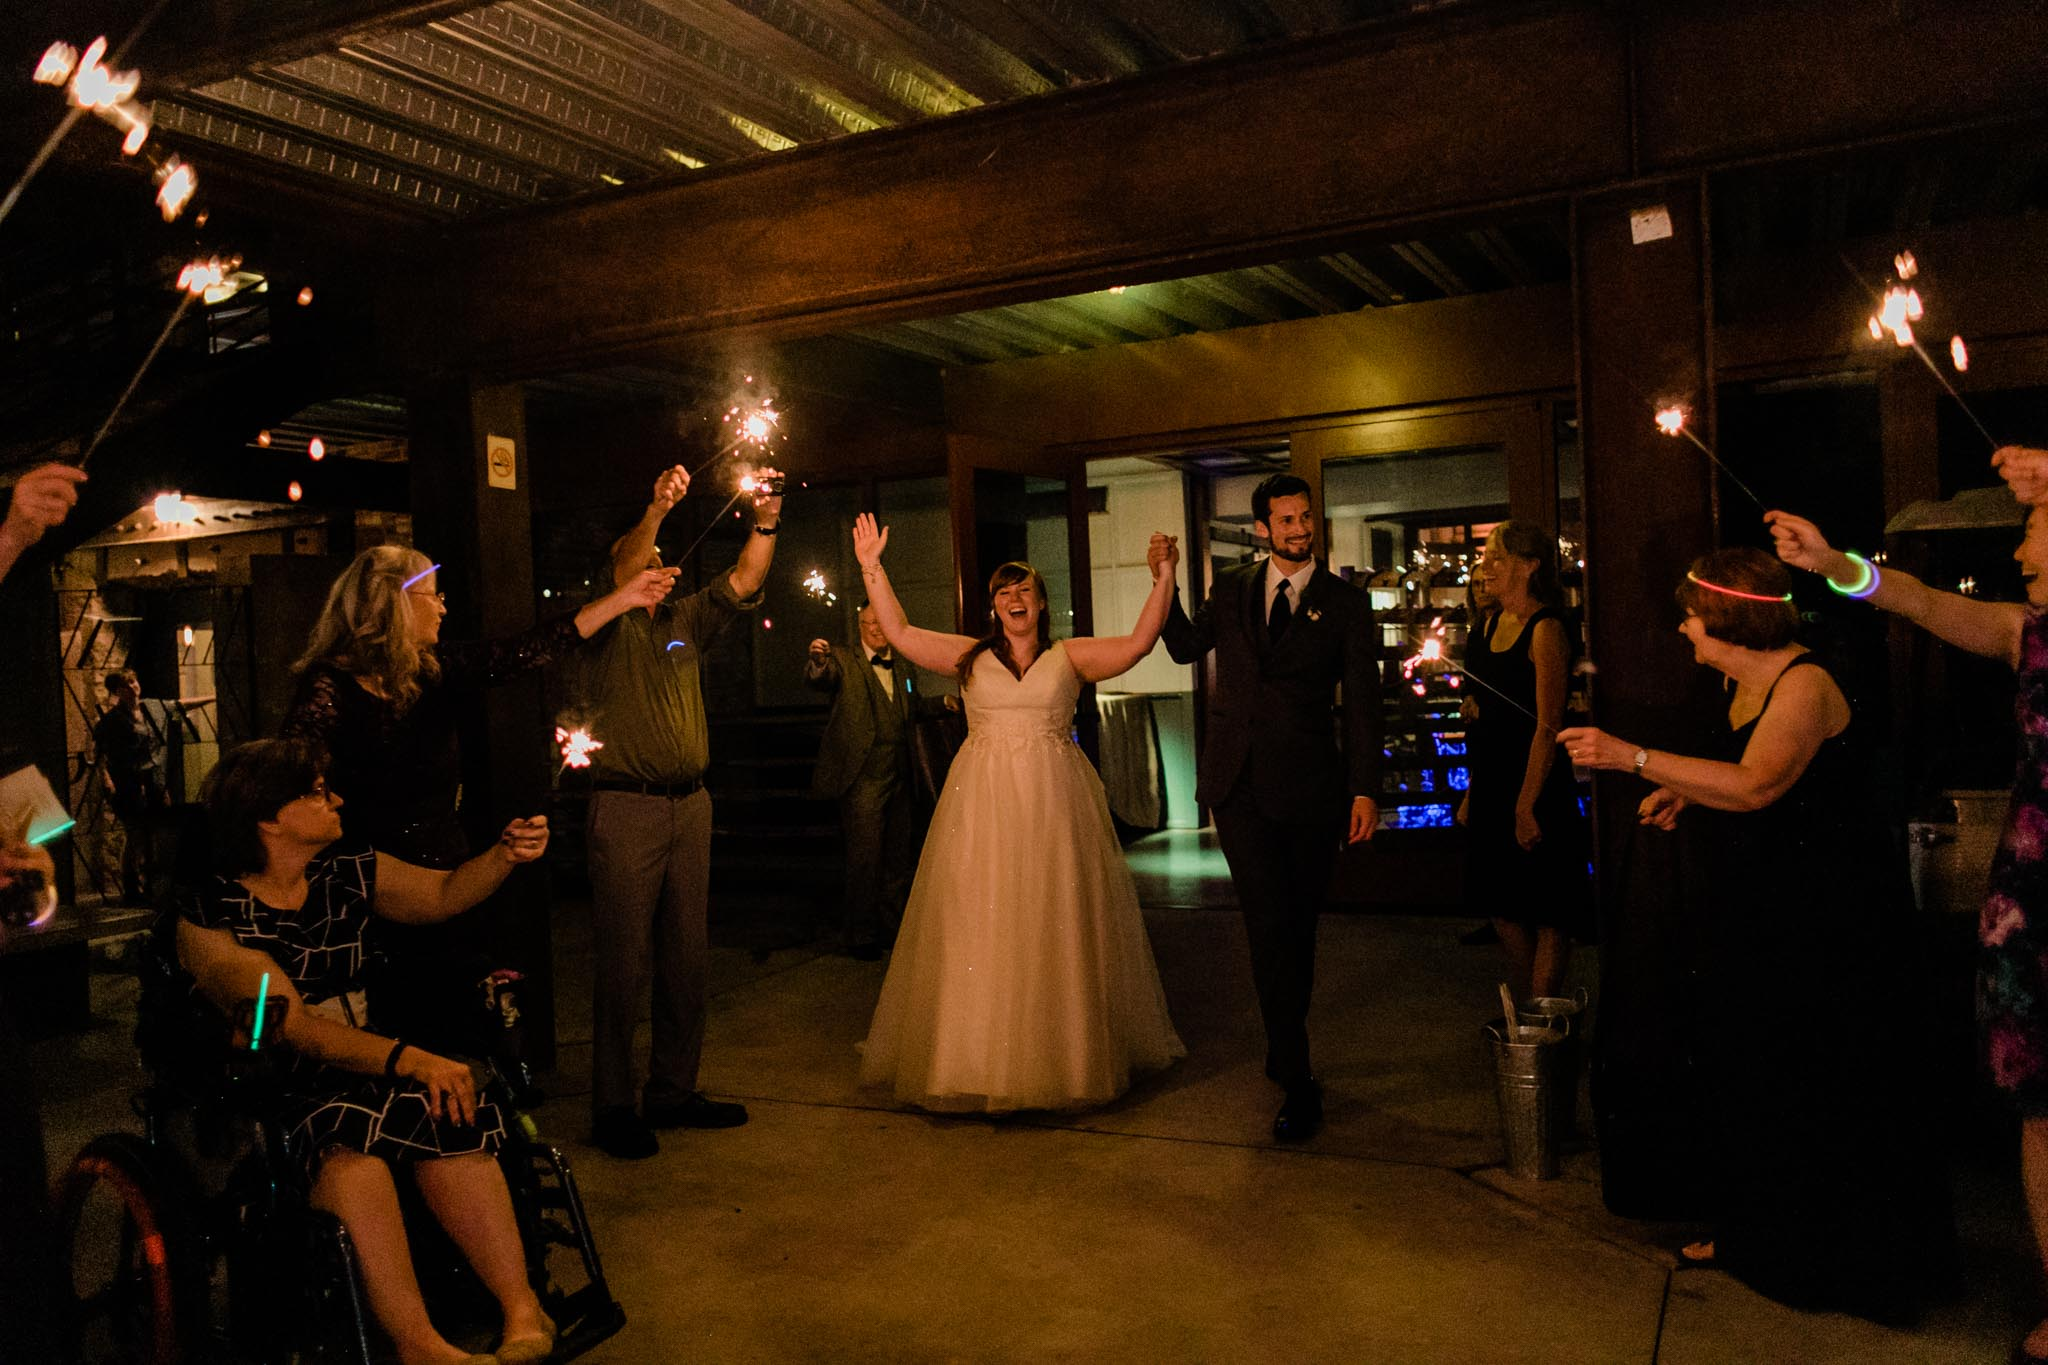 Haw River Ballroom Wedding | Durham Photographer | By G. Lin Photography | Sendoff of bride and groom